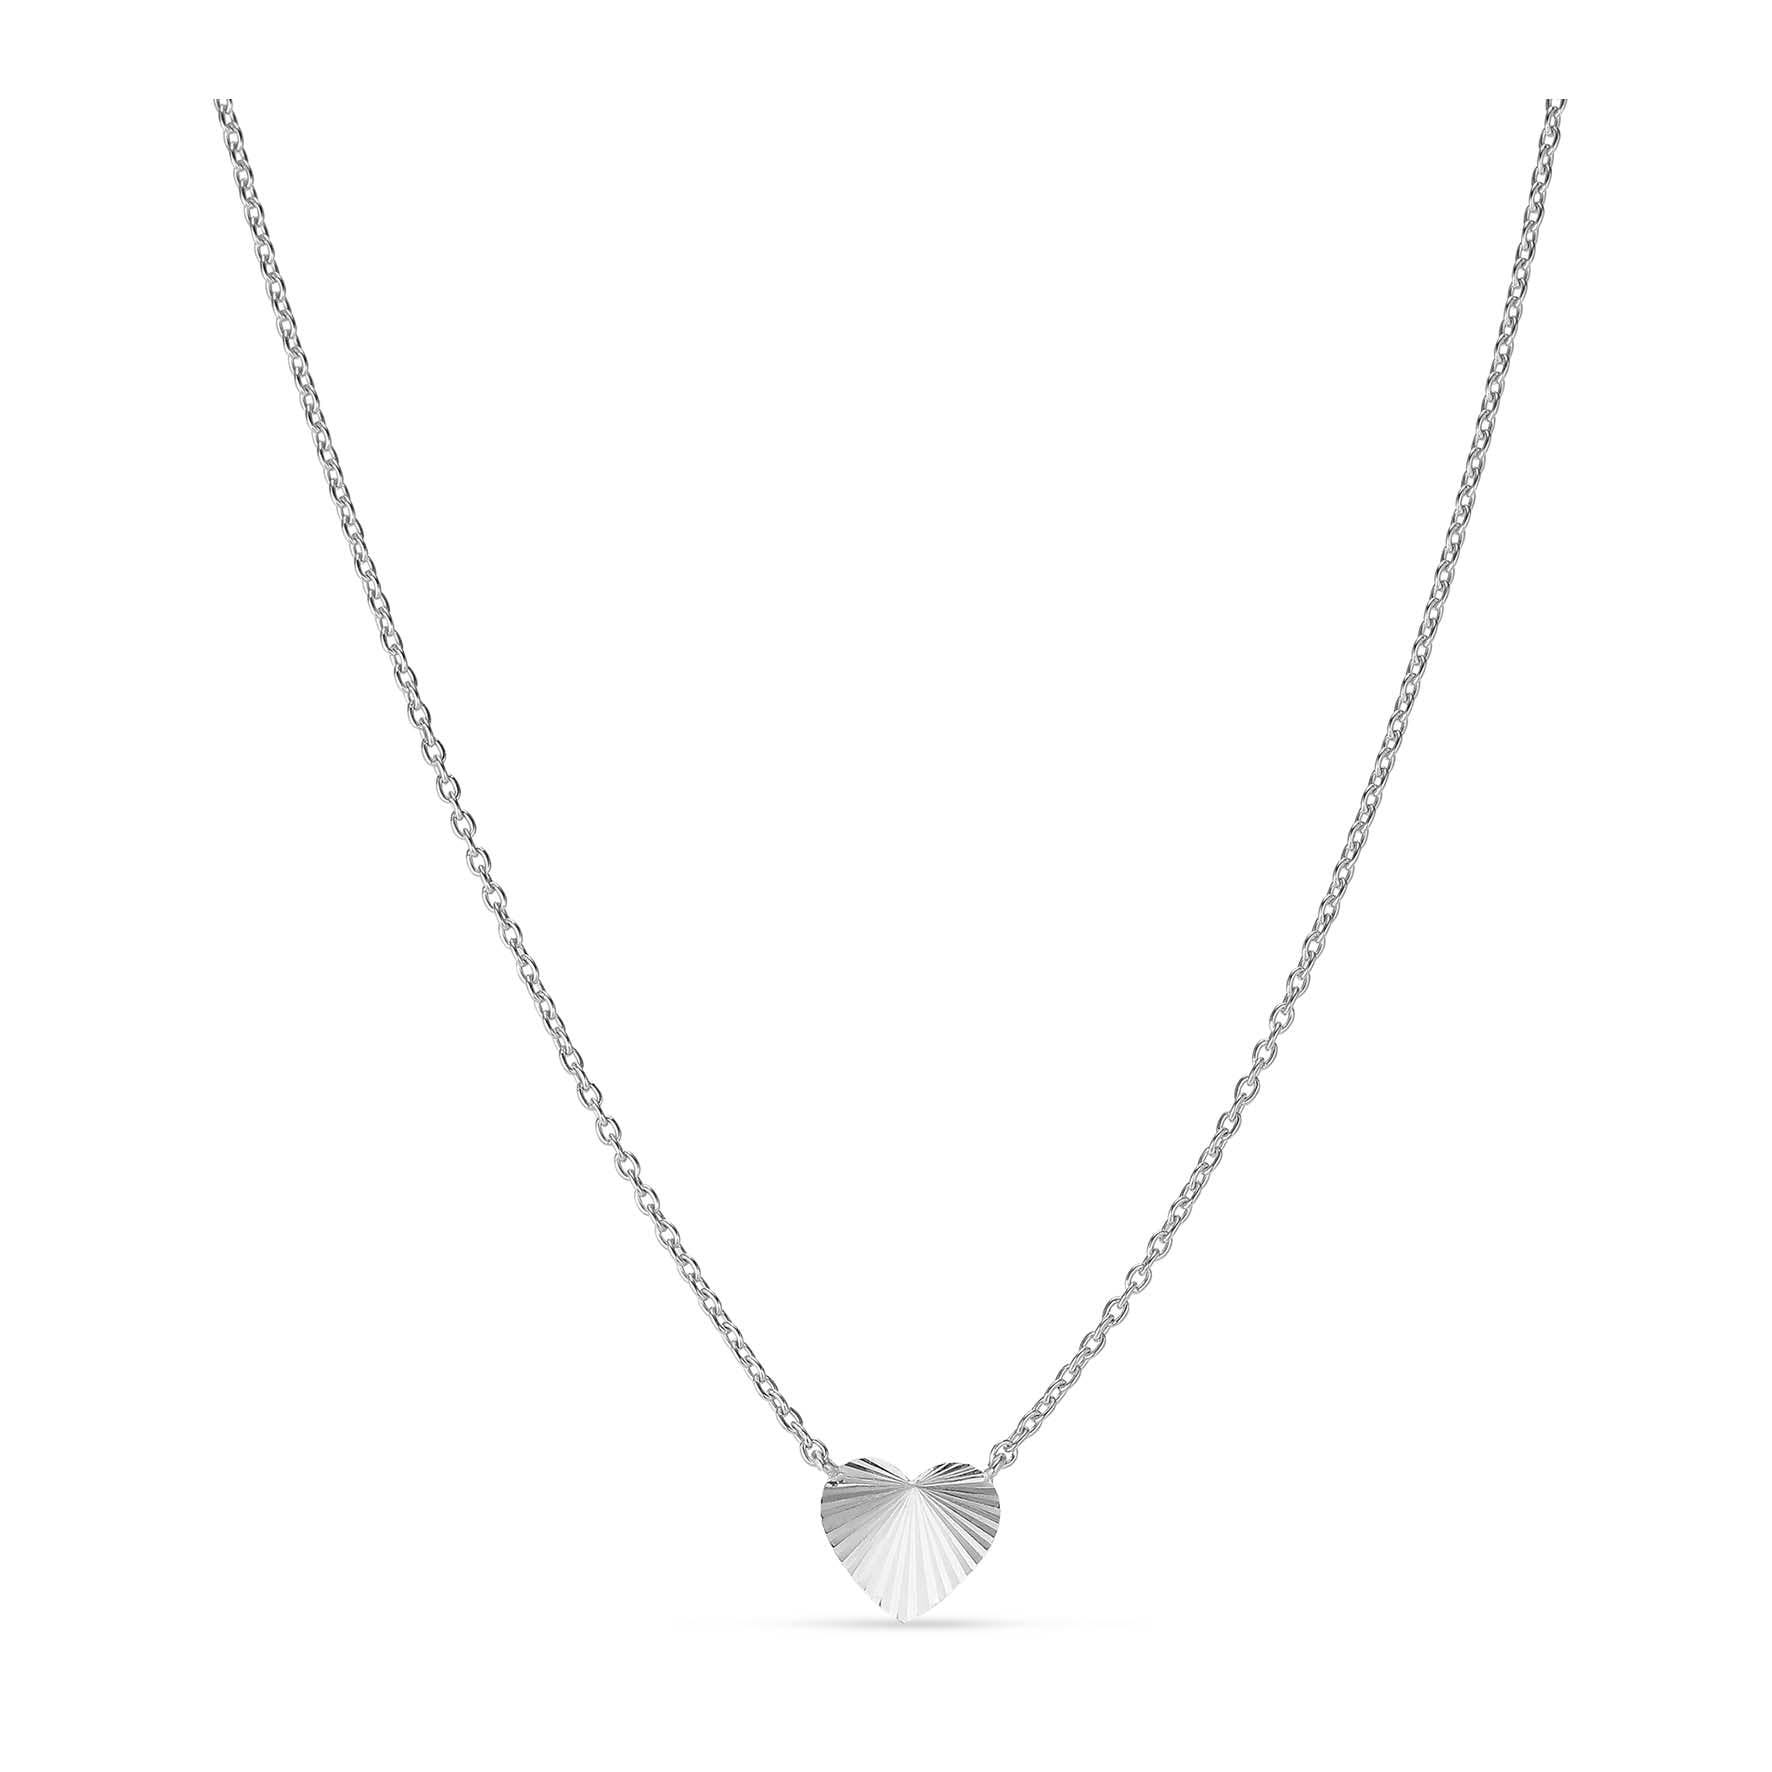 Reflection Heart Necklace